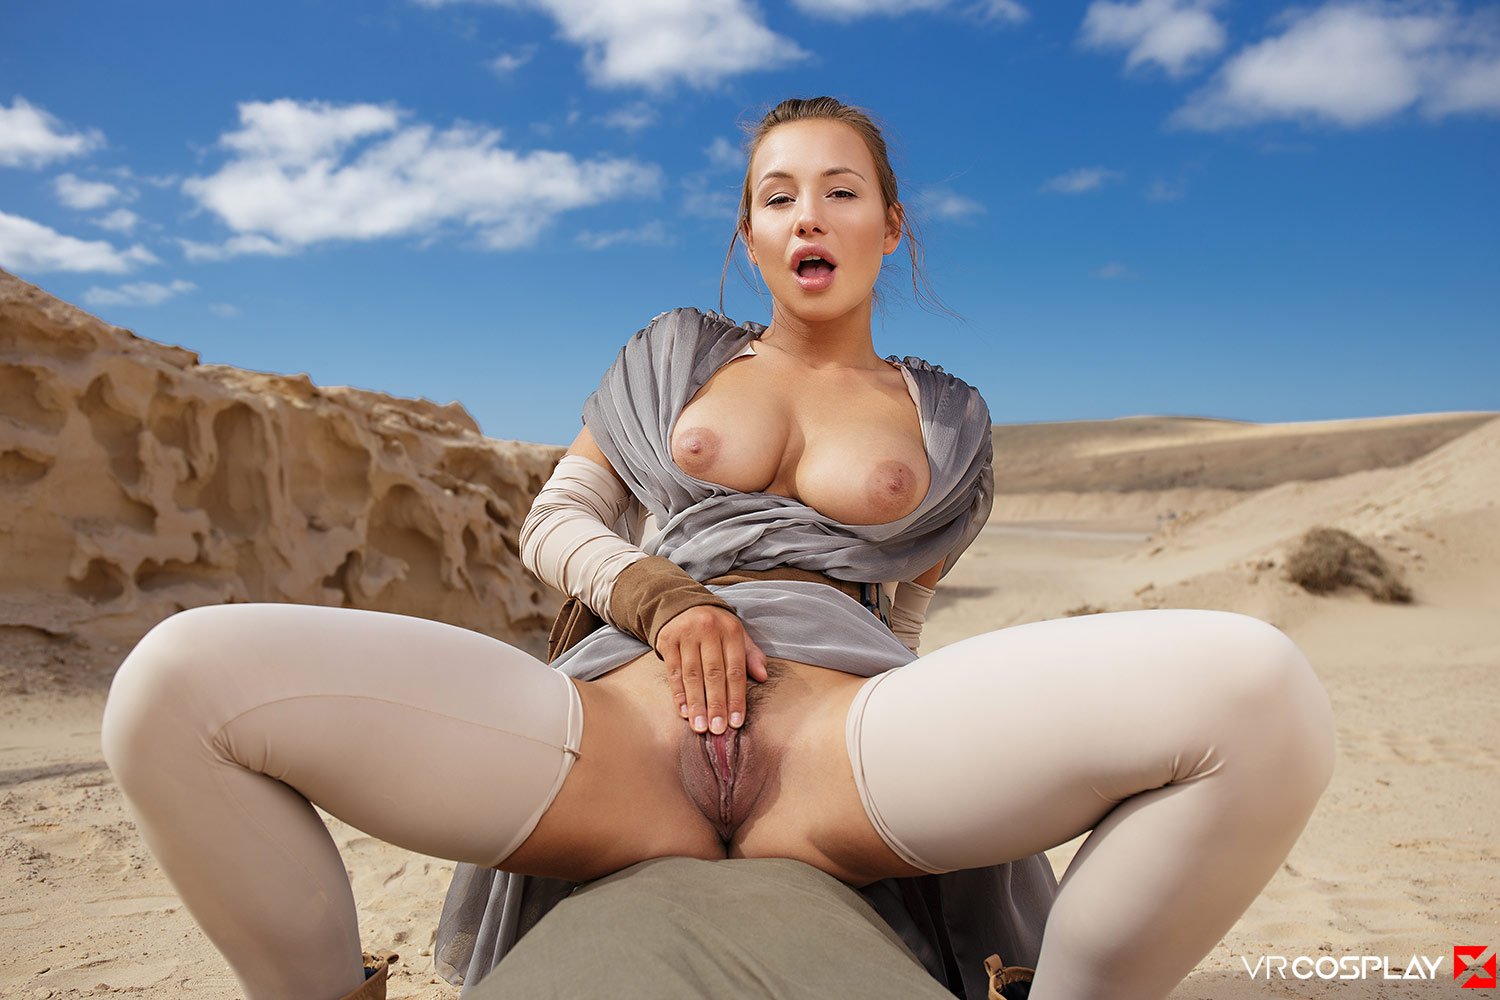 Star Wars Vr Porn Cosplay Starring Taylor Sands As Rey -5288